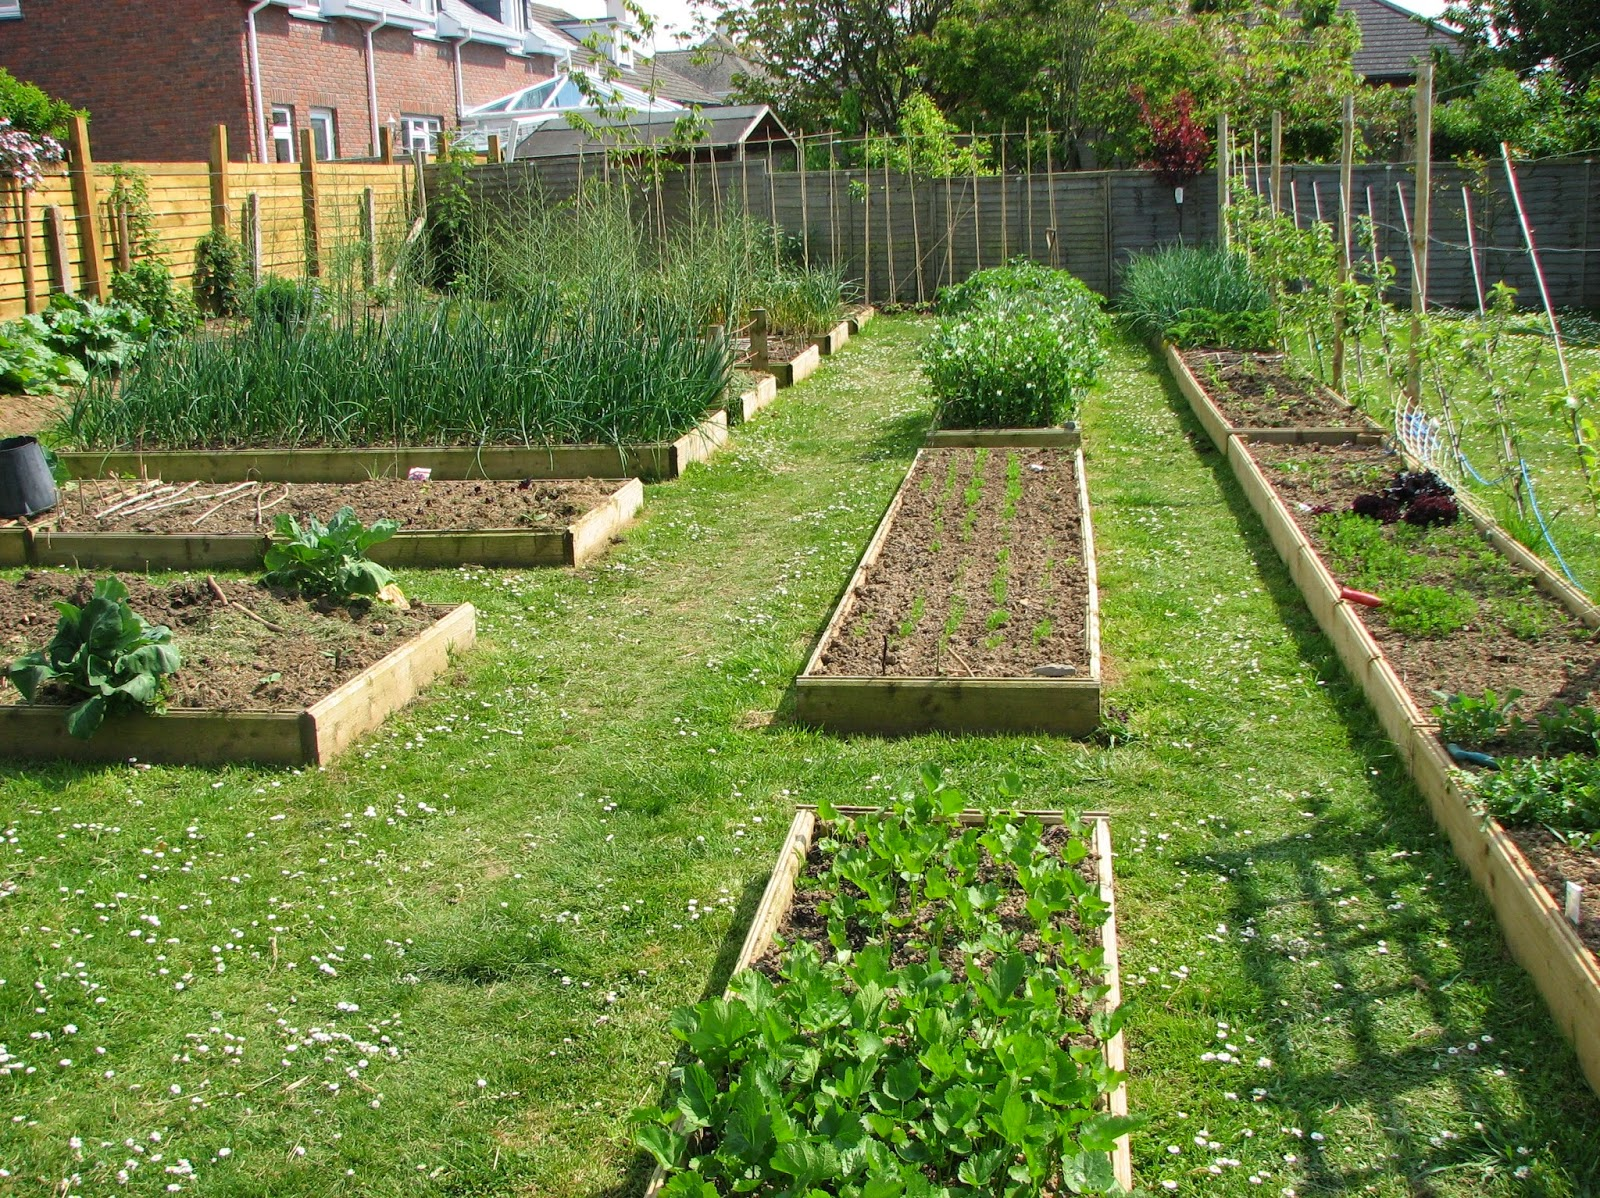 Enclosed vegetable garden design for Backyard vegetable garden design ideas